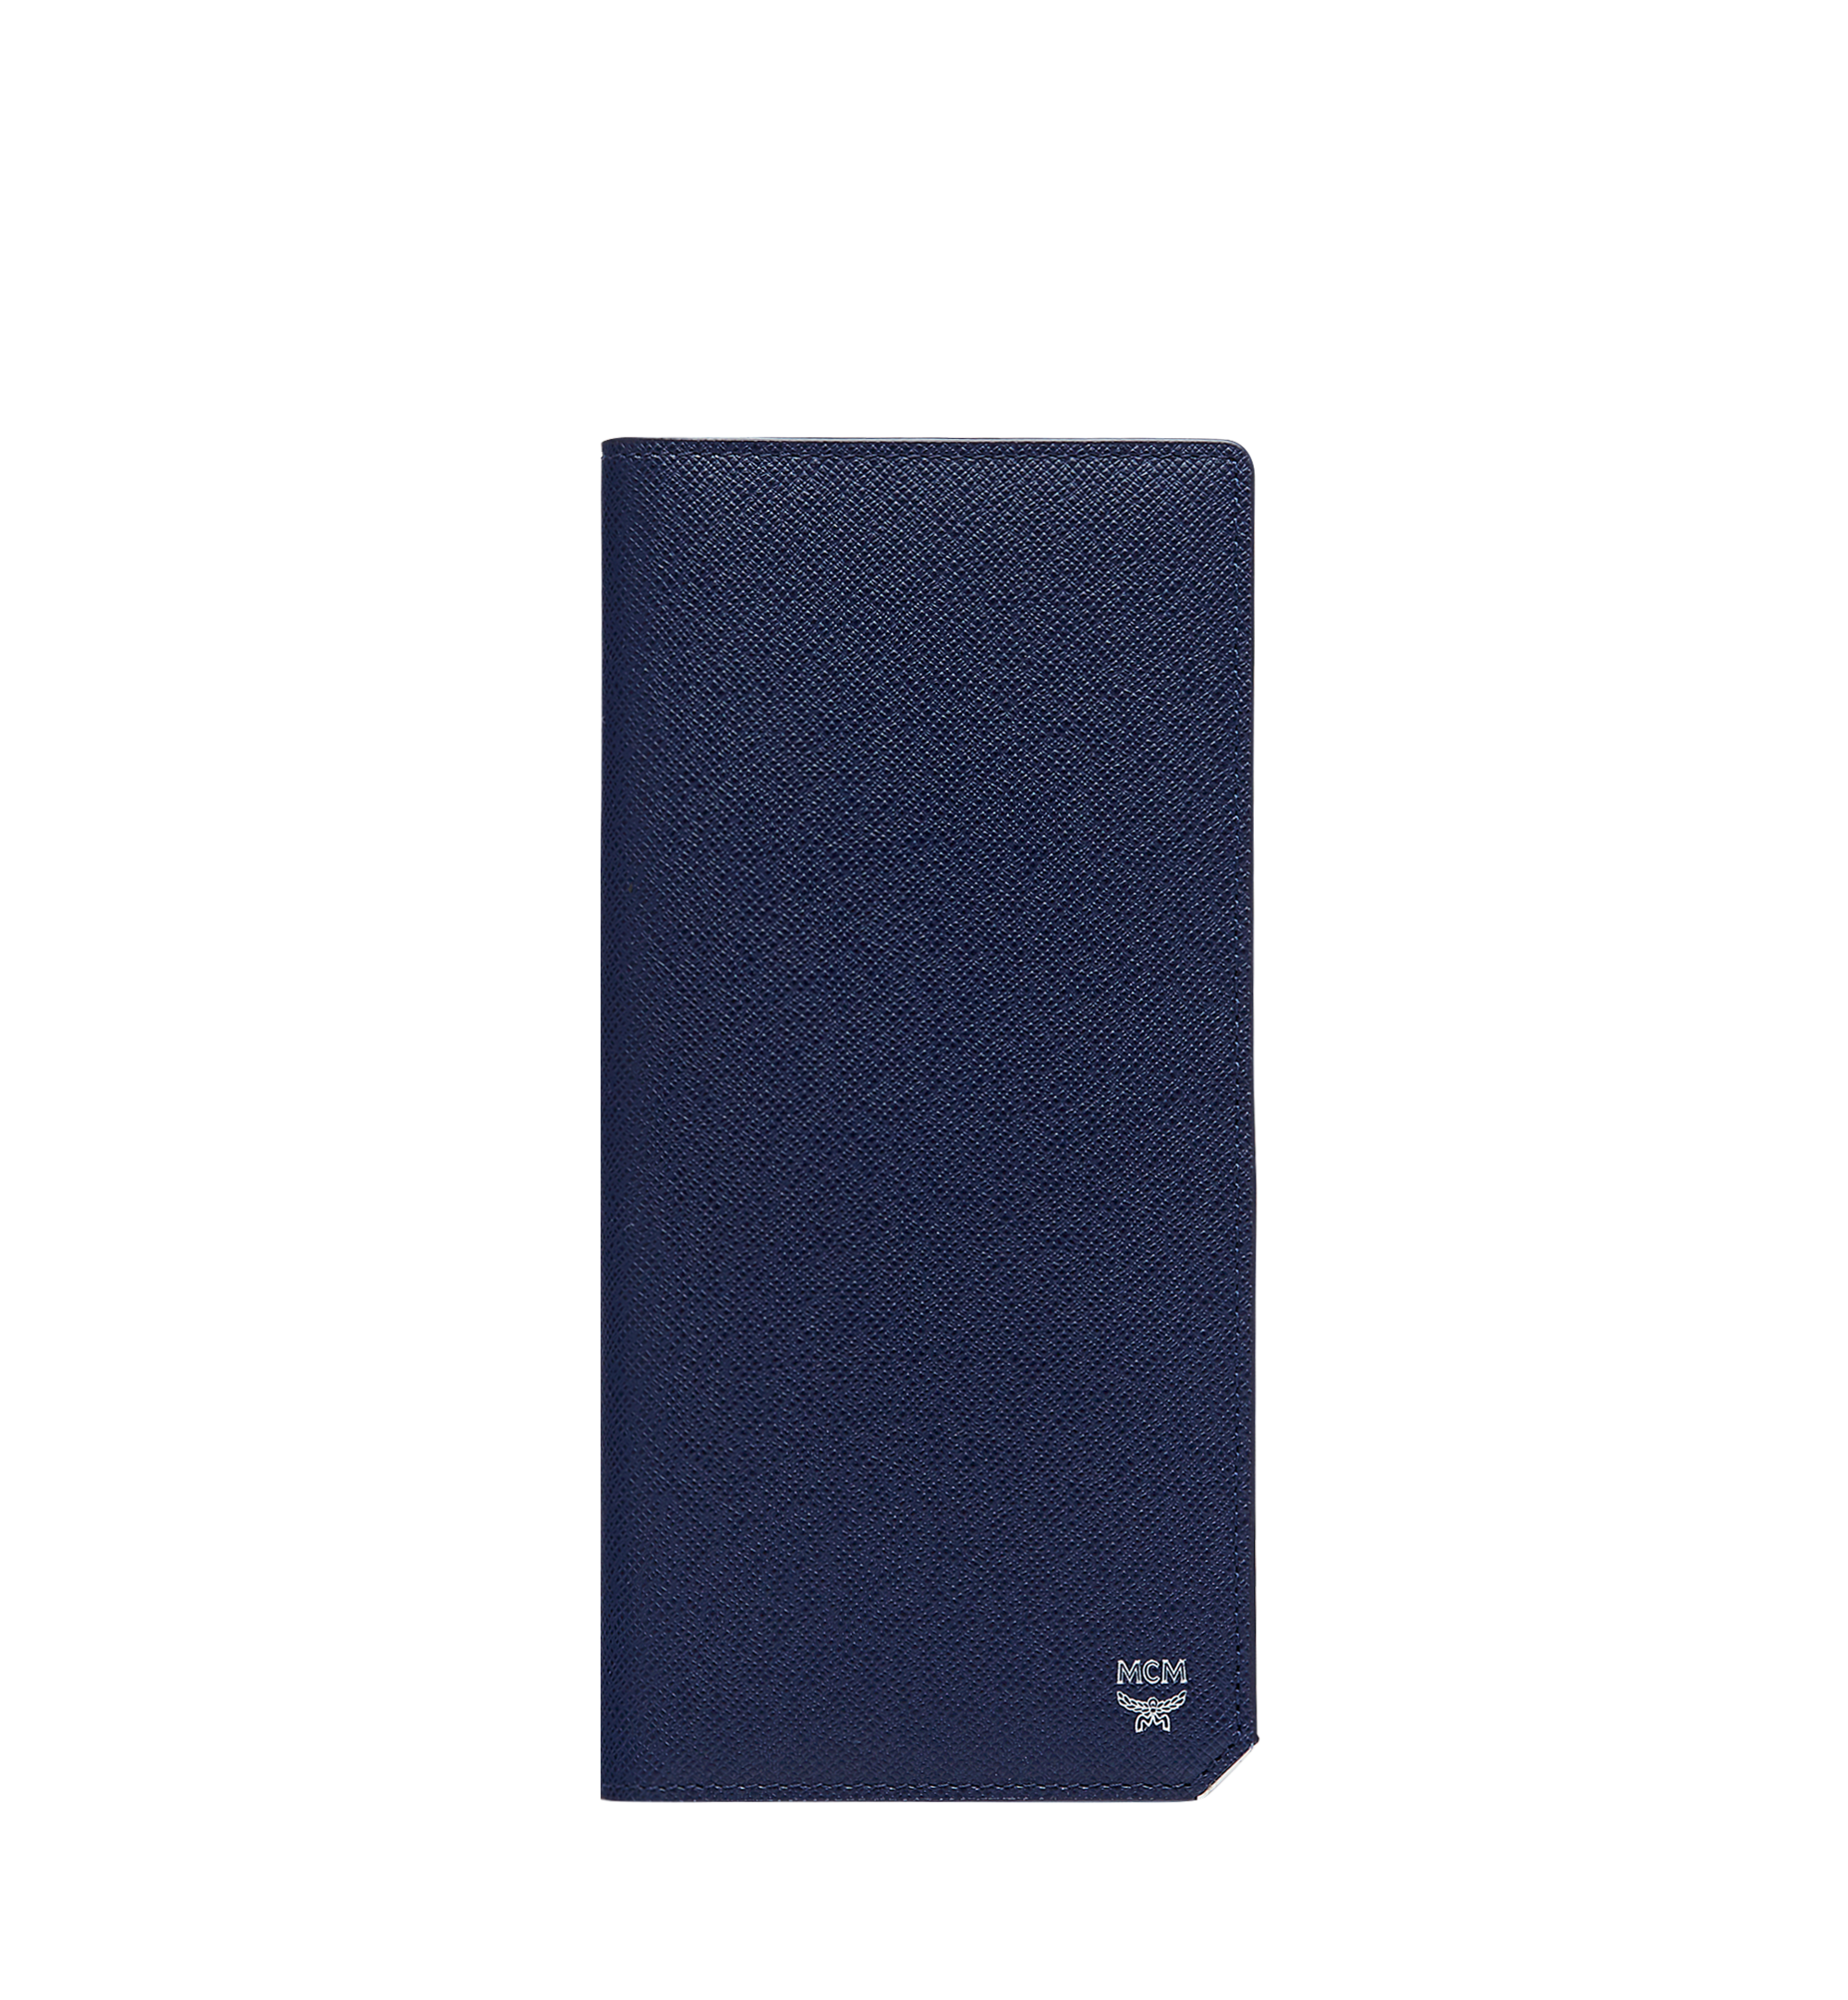 MCM New Bric Long Two Fold Wallet in Embossed Leather Navy MXL8ALL50VY001 Alternate View 1